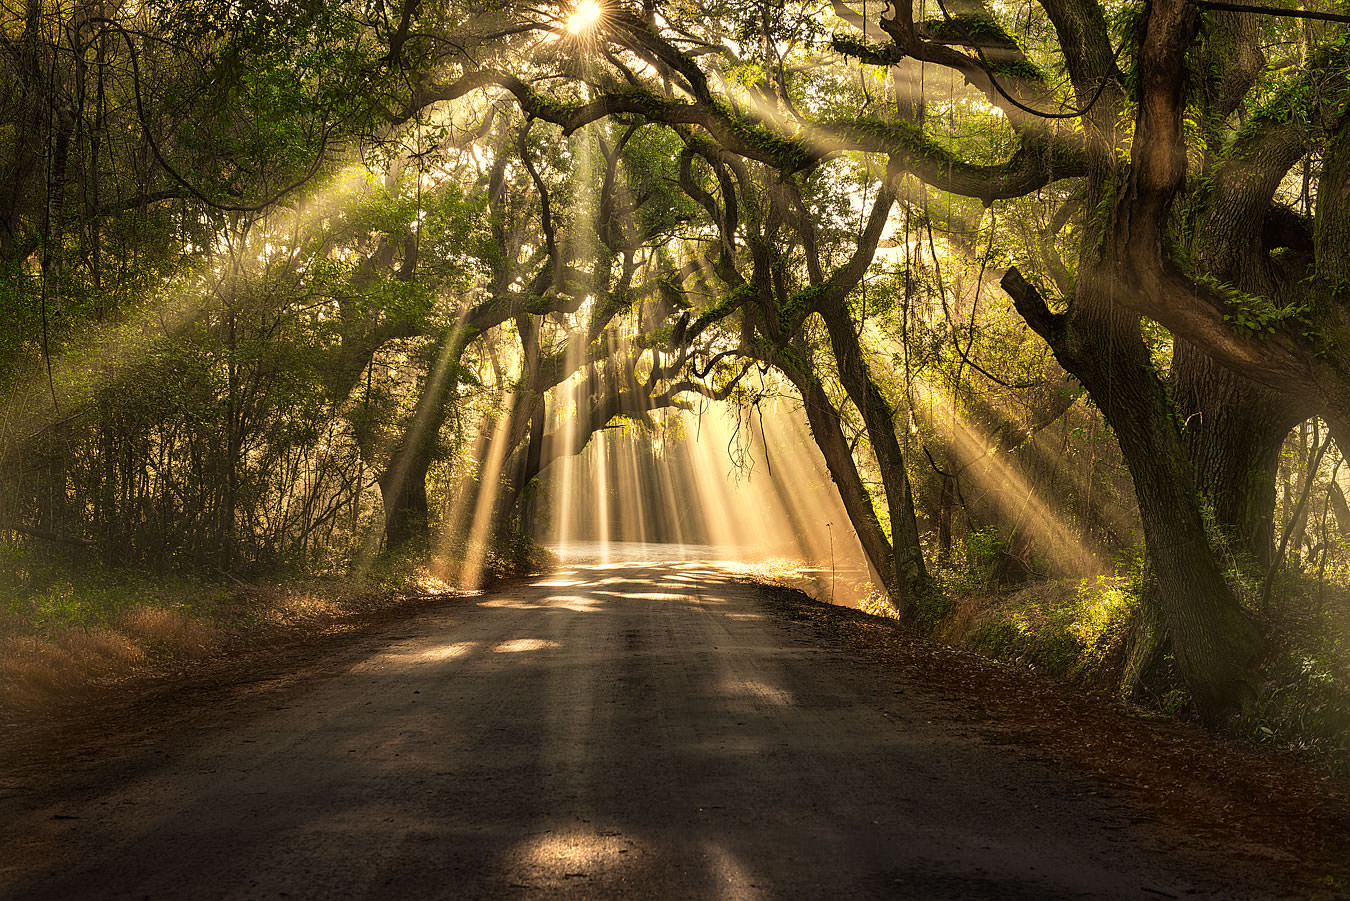 Light streams through trees on a southern road